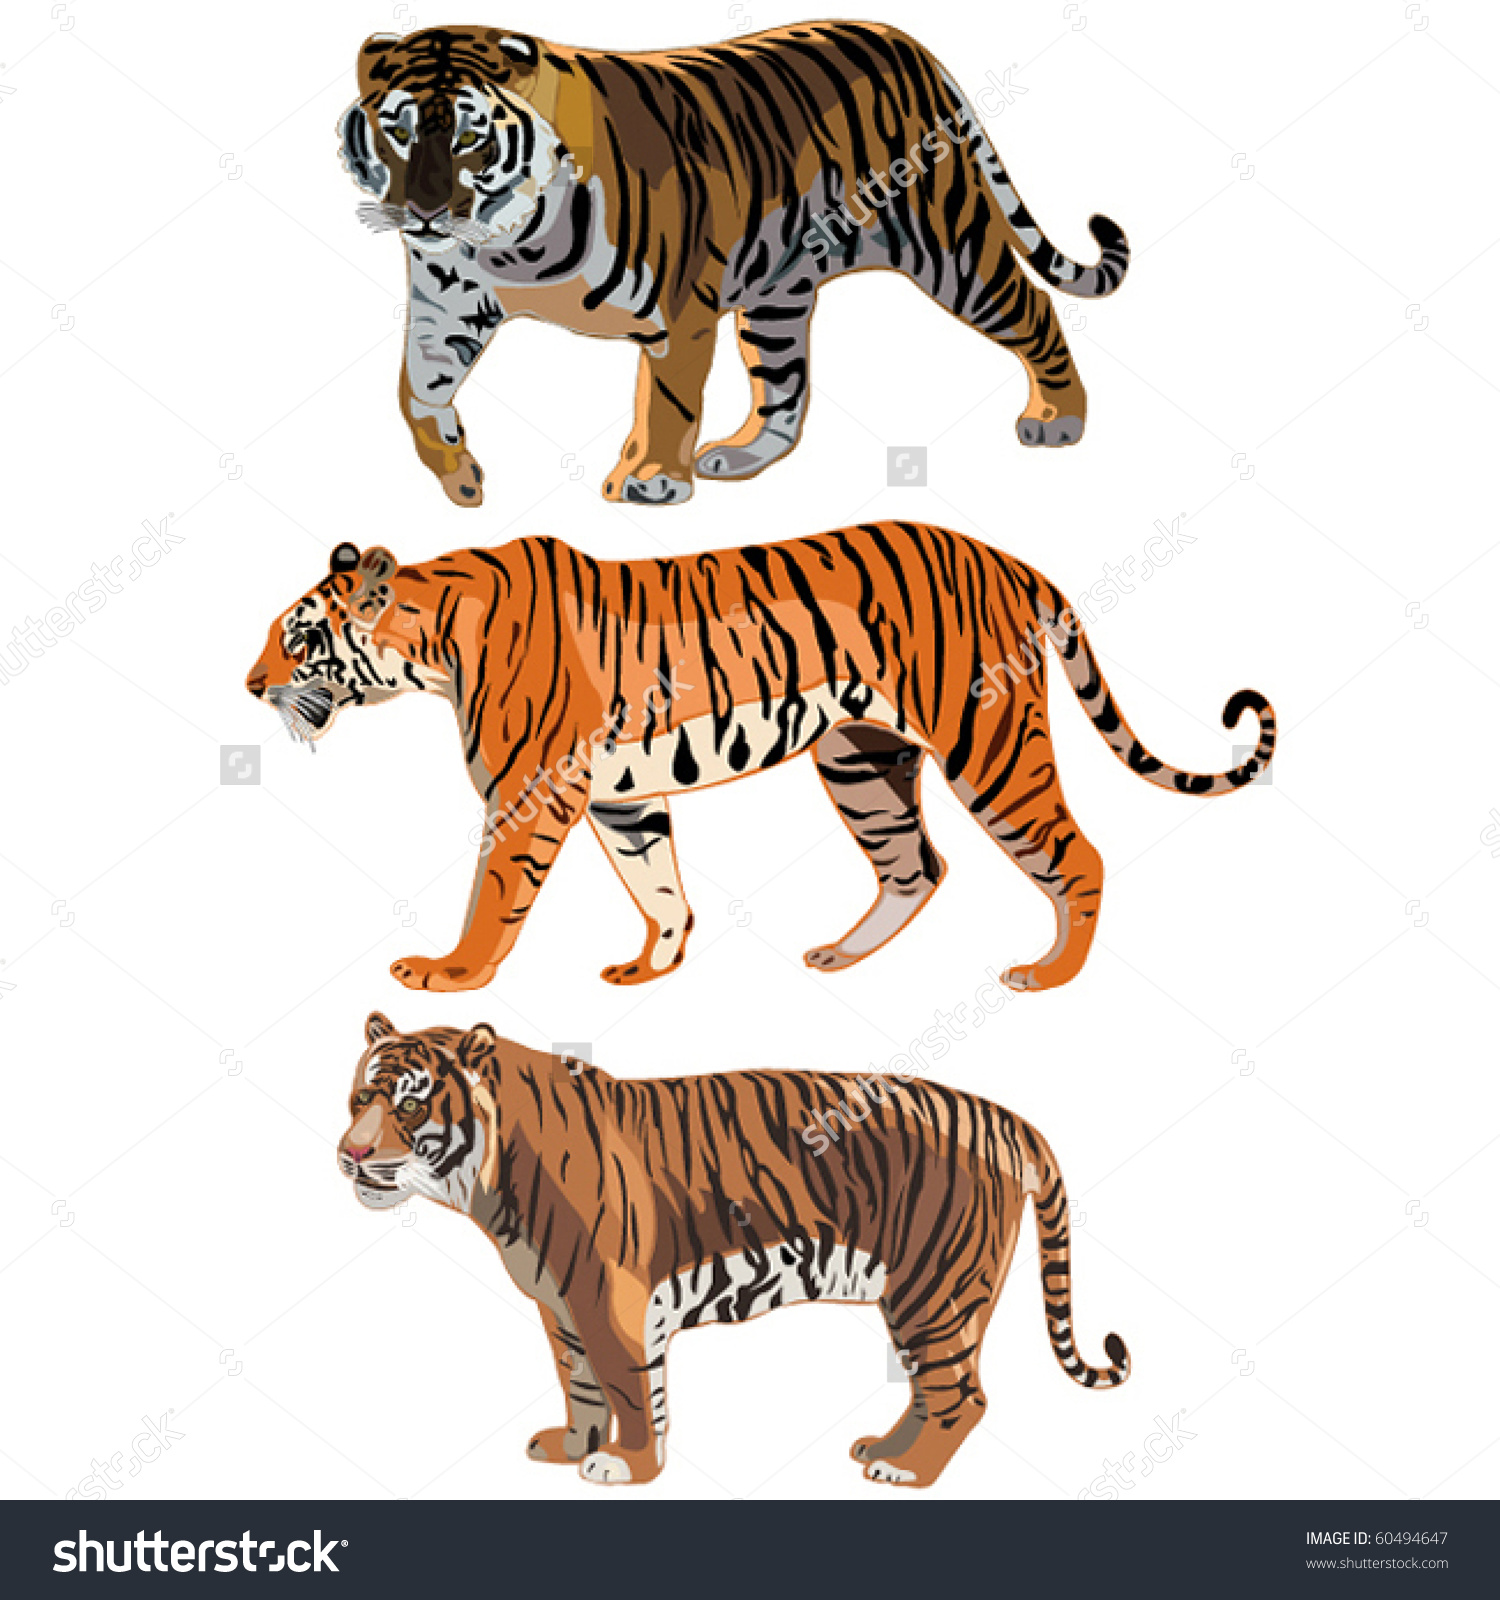 Amur Tiger clipart #9, Download drawings